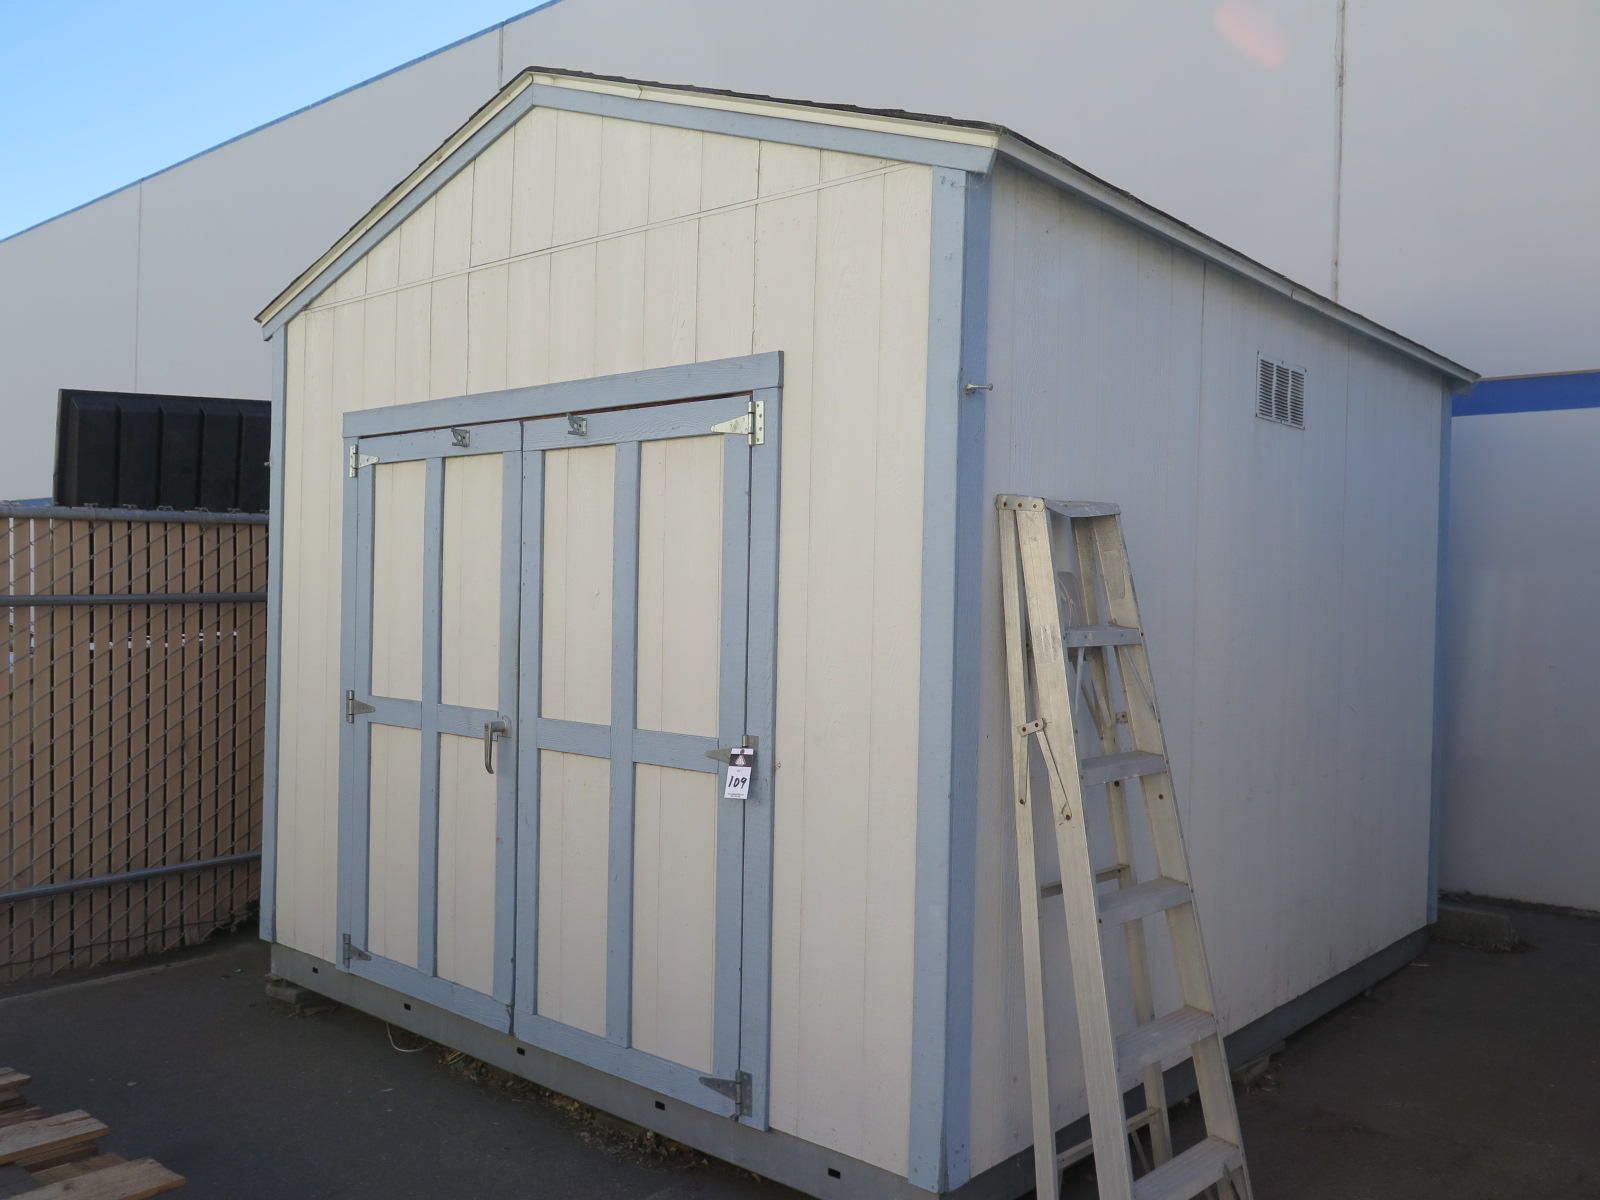 Tuff shed 10 x 20 storage shed for Tough shed sale